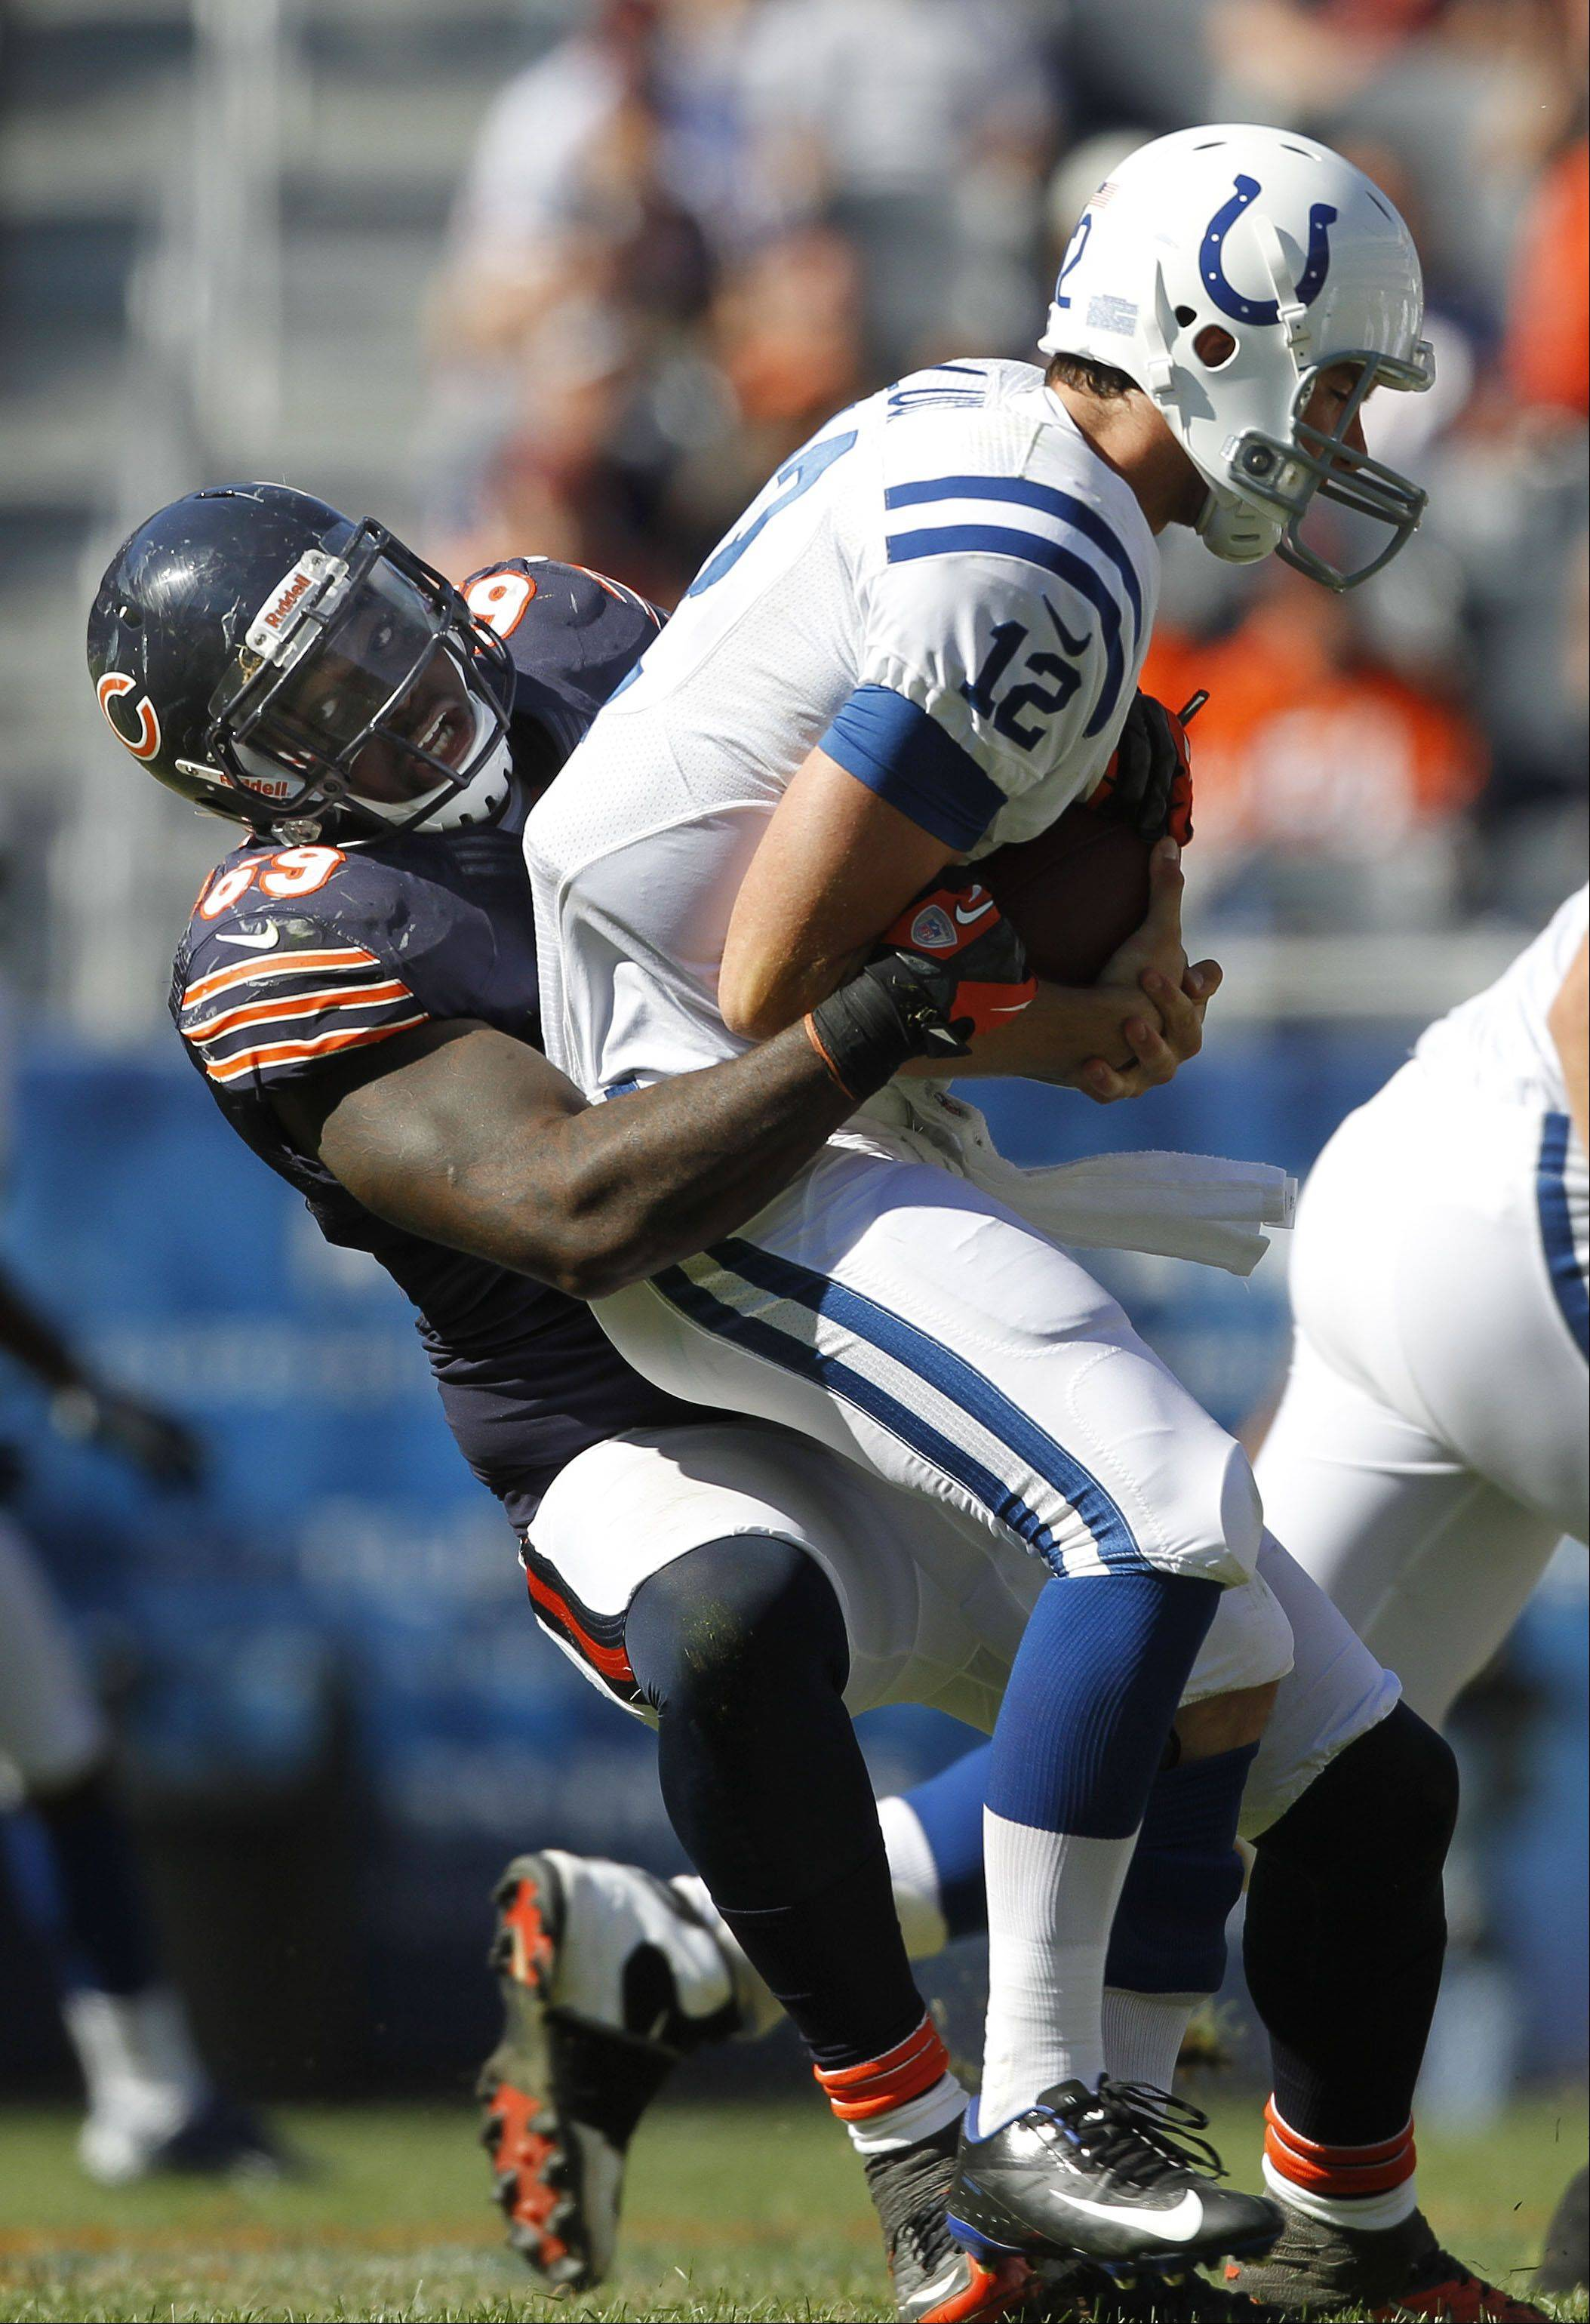 Bears defensive end Henry Melton sacks Colts quarterback Andrew Luck in Sunday's season-opening victory.